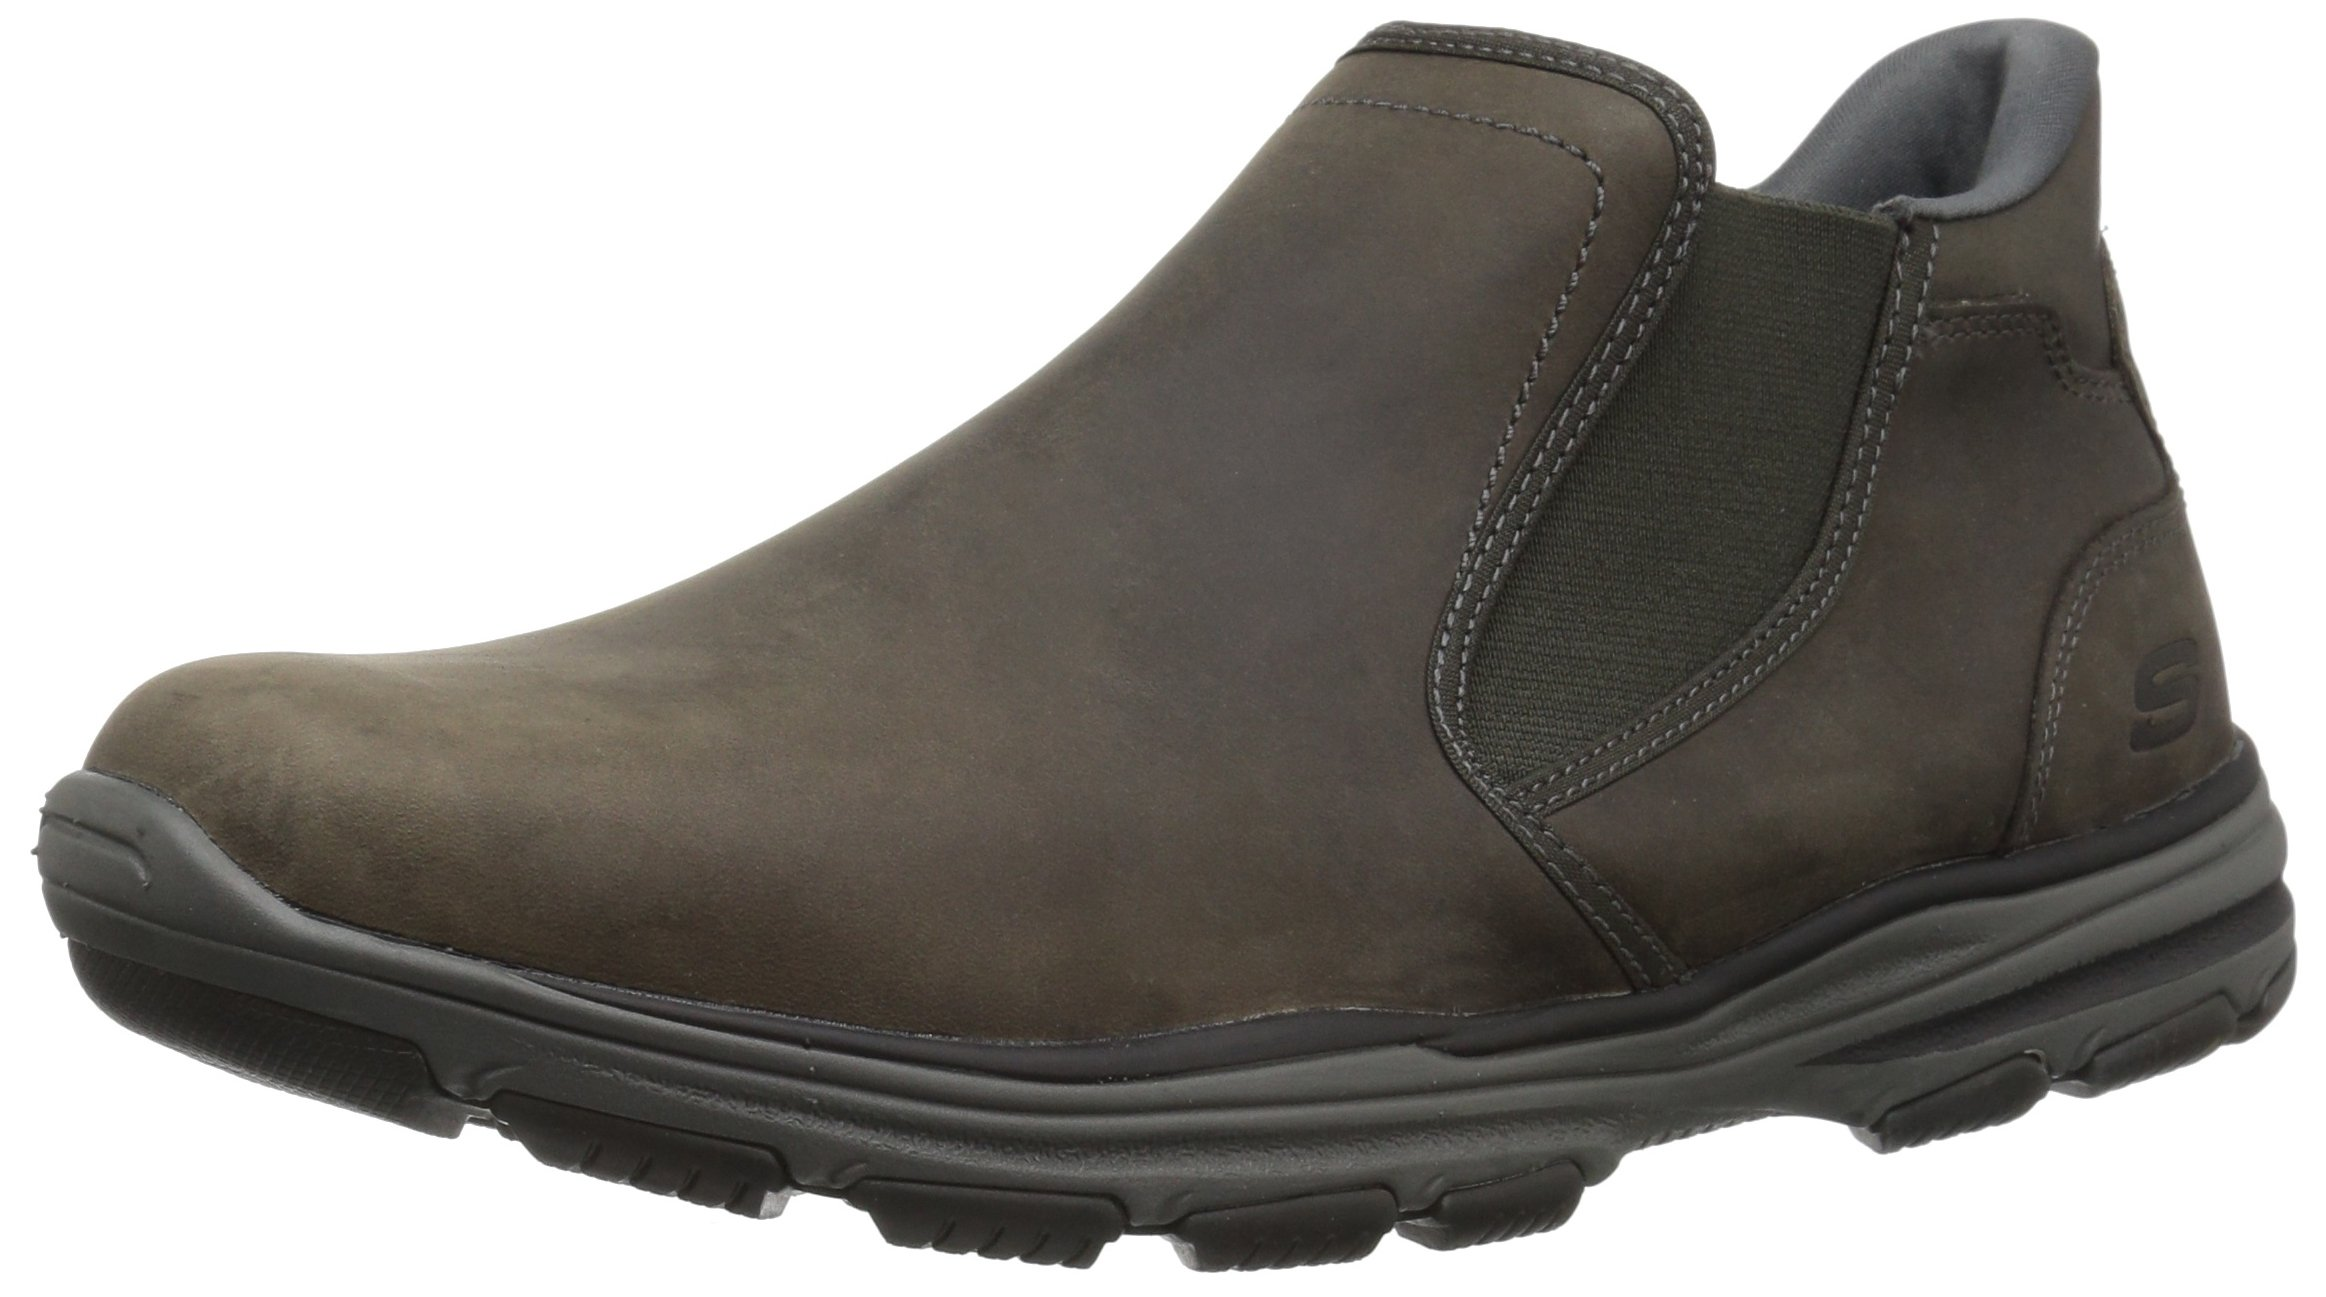 Skechers USA Men's Garton Keven Ankle Bootie,Charcoal,9.5 M US by Skechers